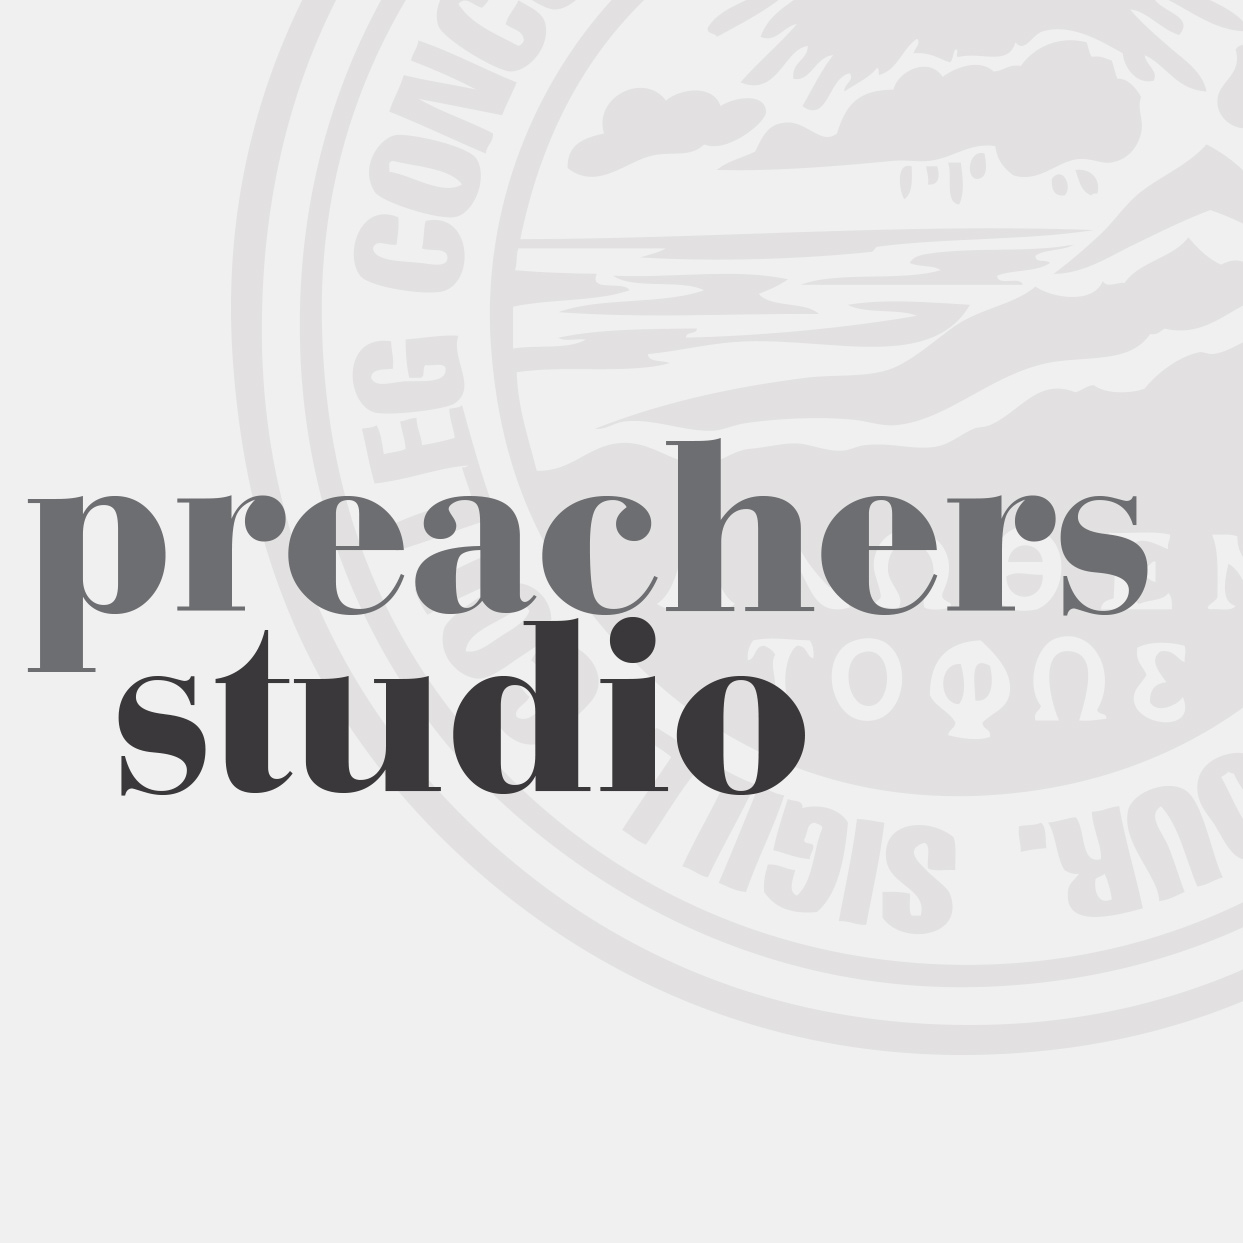 Preachers Studio: Scott Seidler